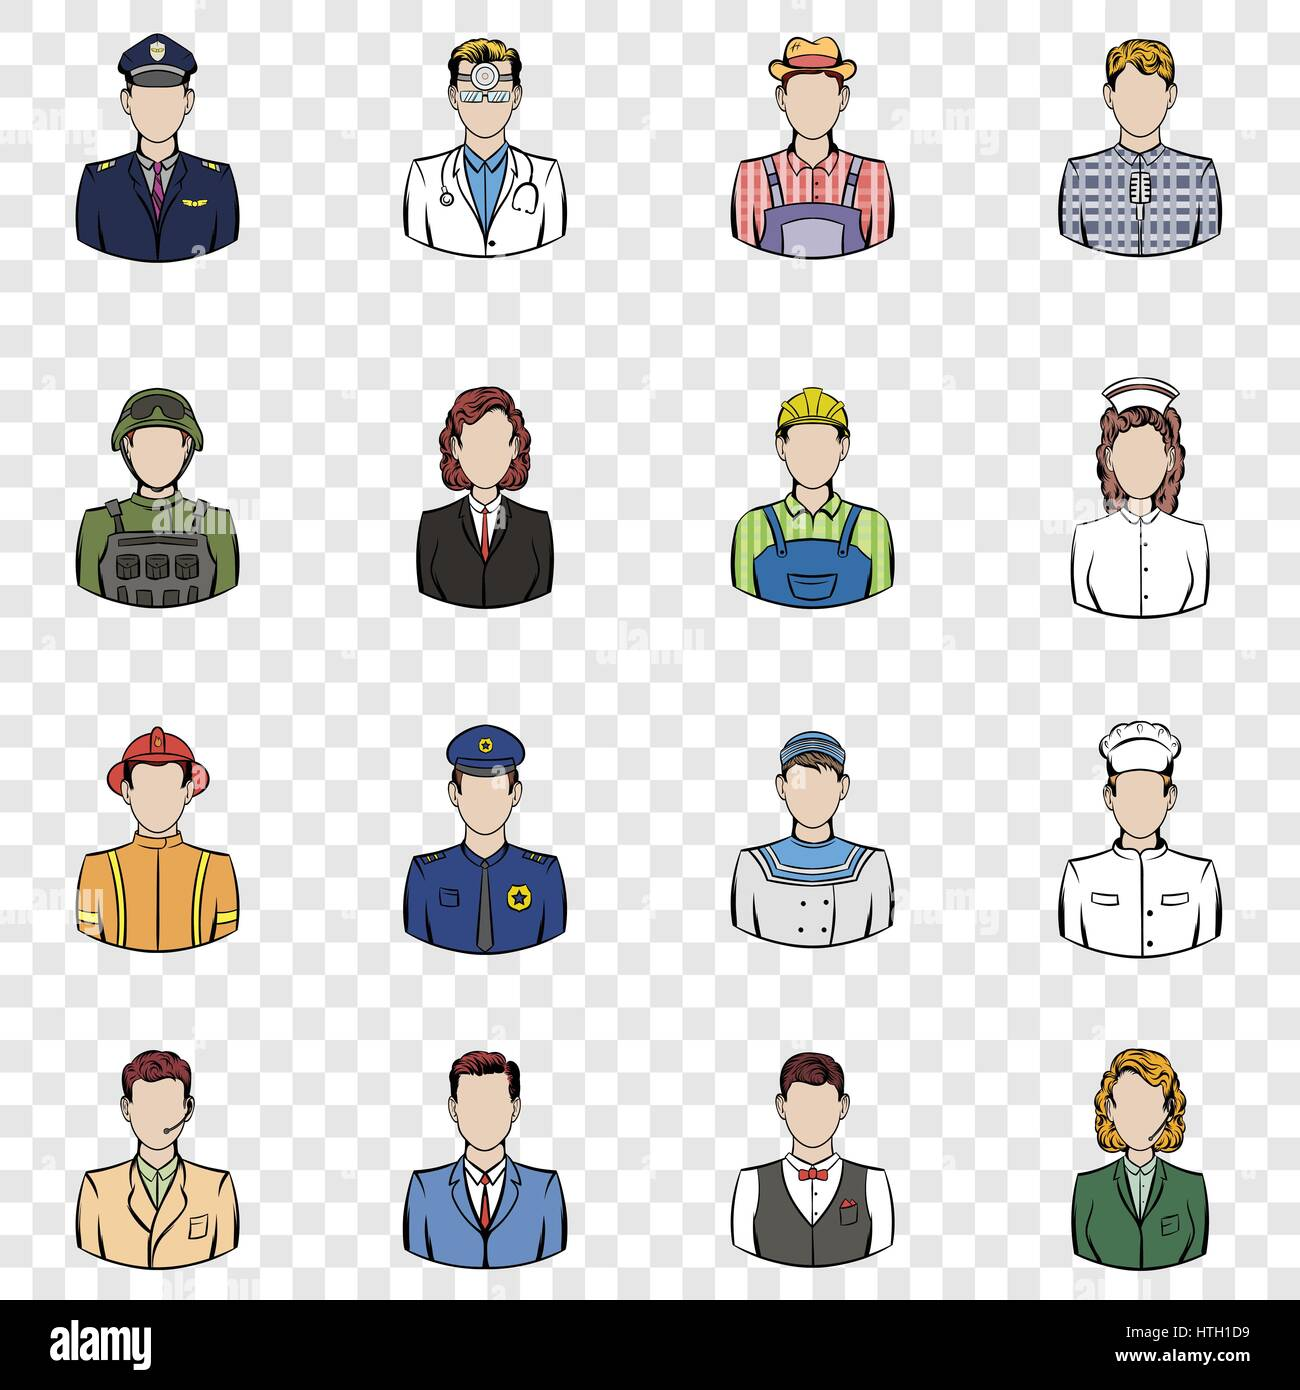 Profession set icons - Stock Vector